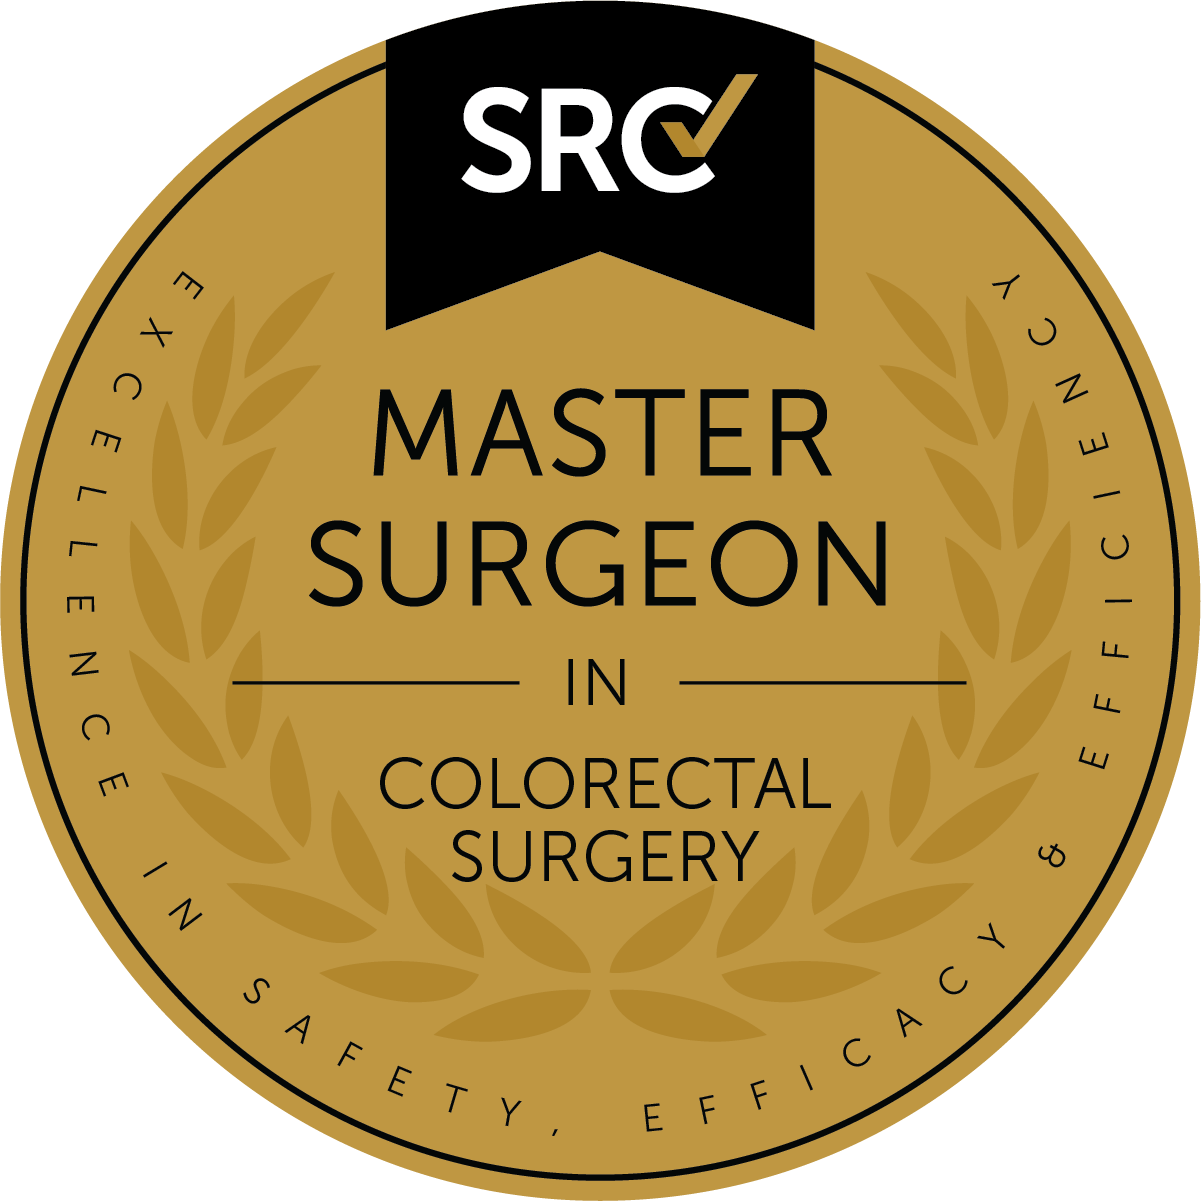 Master Surgeon In Colorectal Surgery